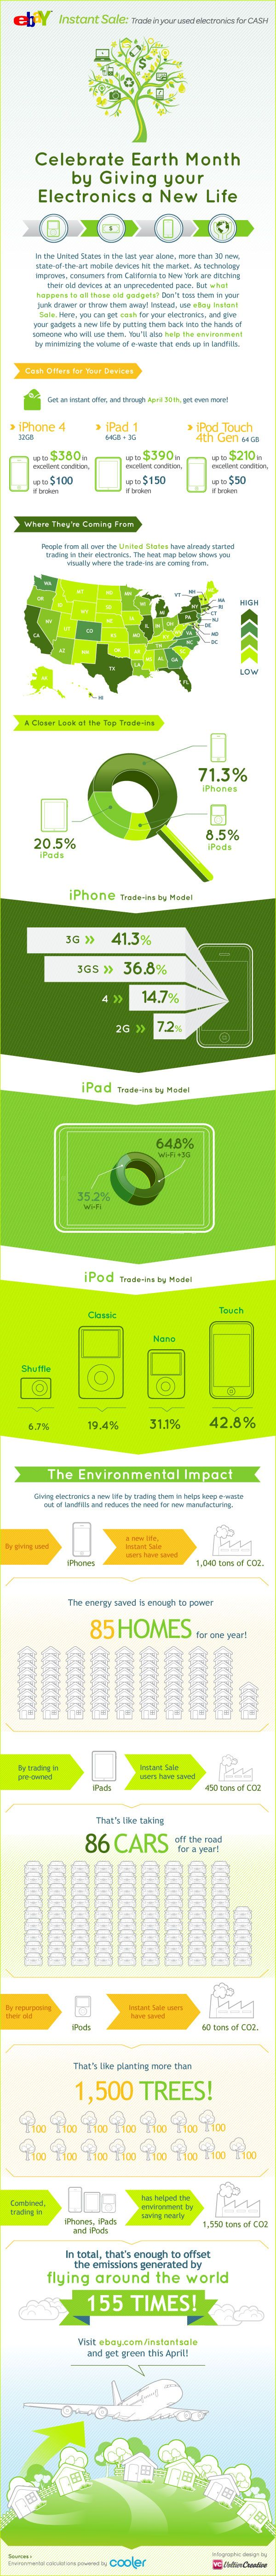 How The Iphone Trade Ins Help The Environment Visit Our New